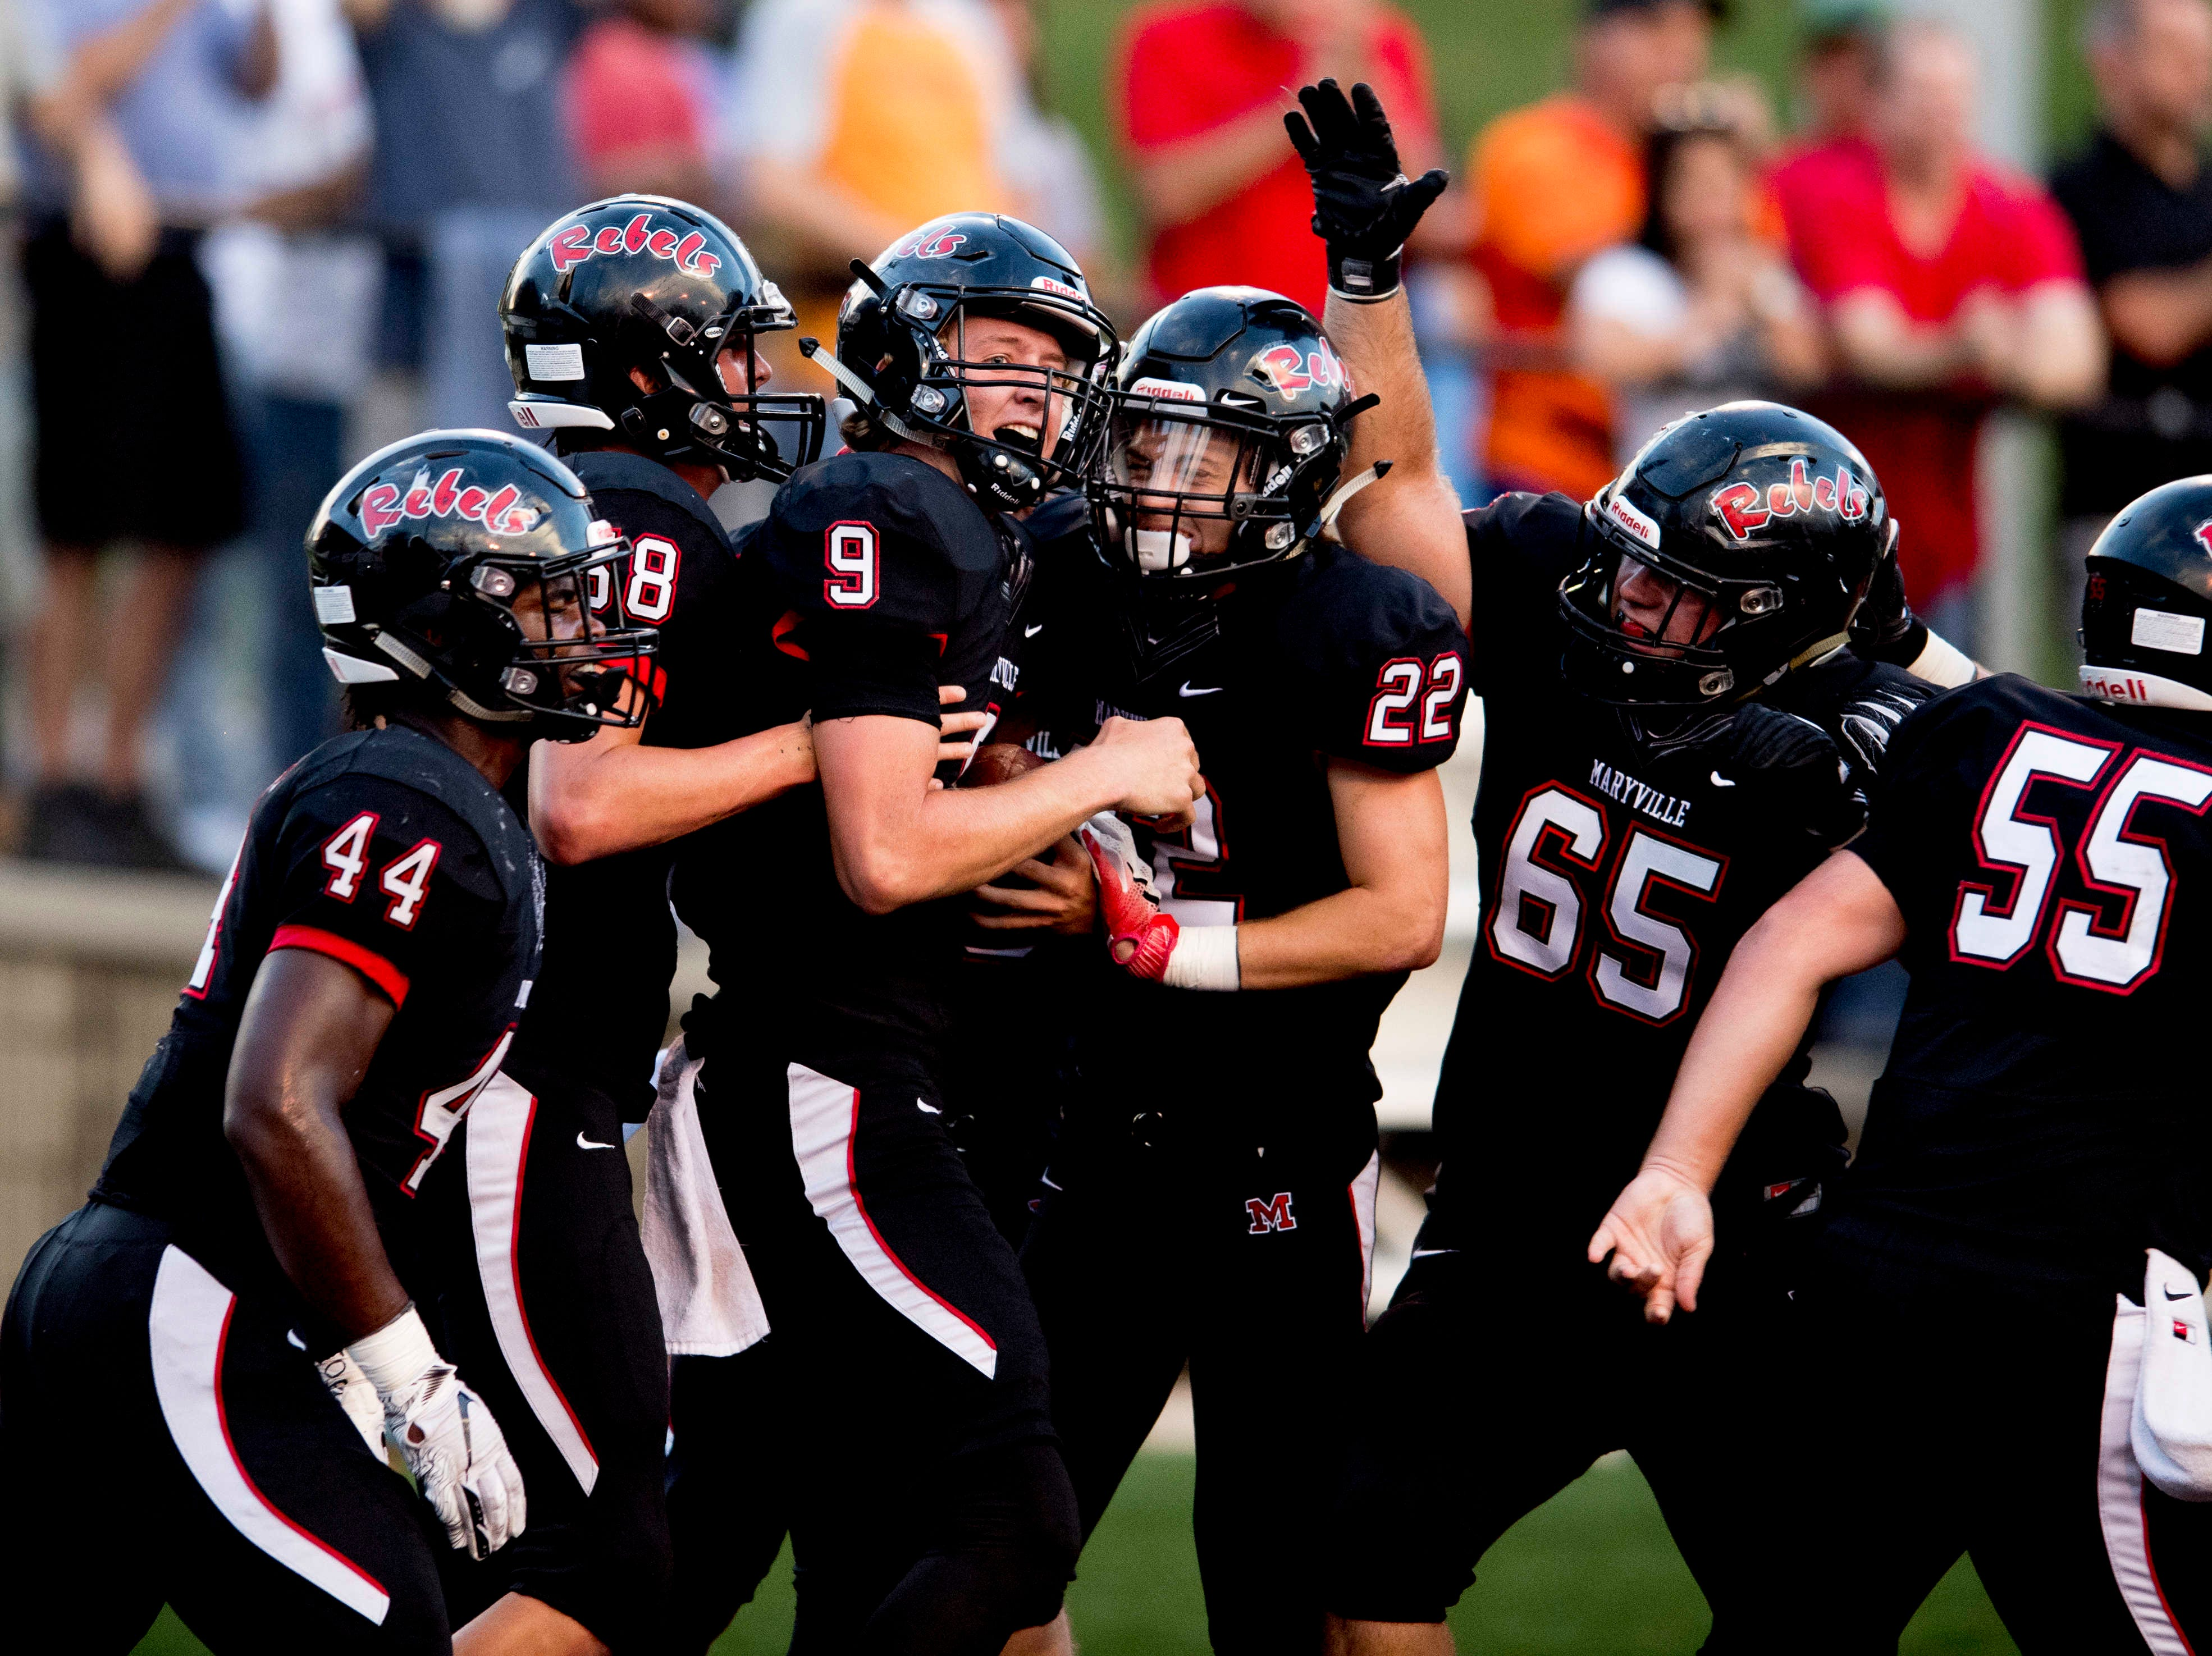 Maryville's Cade Chambers (9) is congratulated by team members after running a touchdown during a football game between Maryville and Oakland at Maryville High School in Maryville, Tennessee on Friday, August 24, 2018.